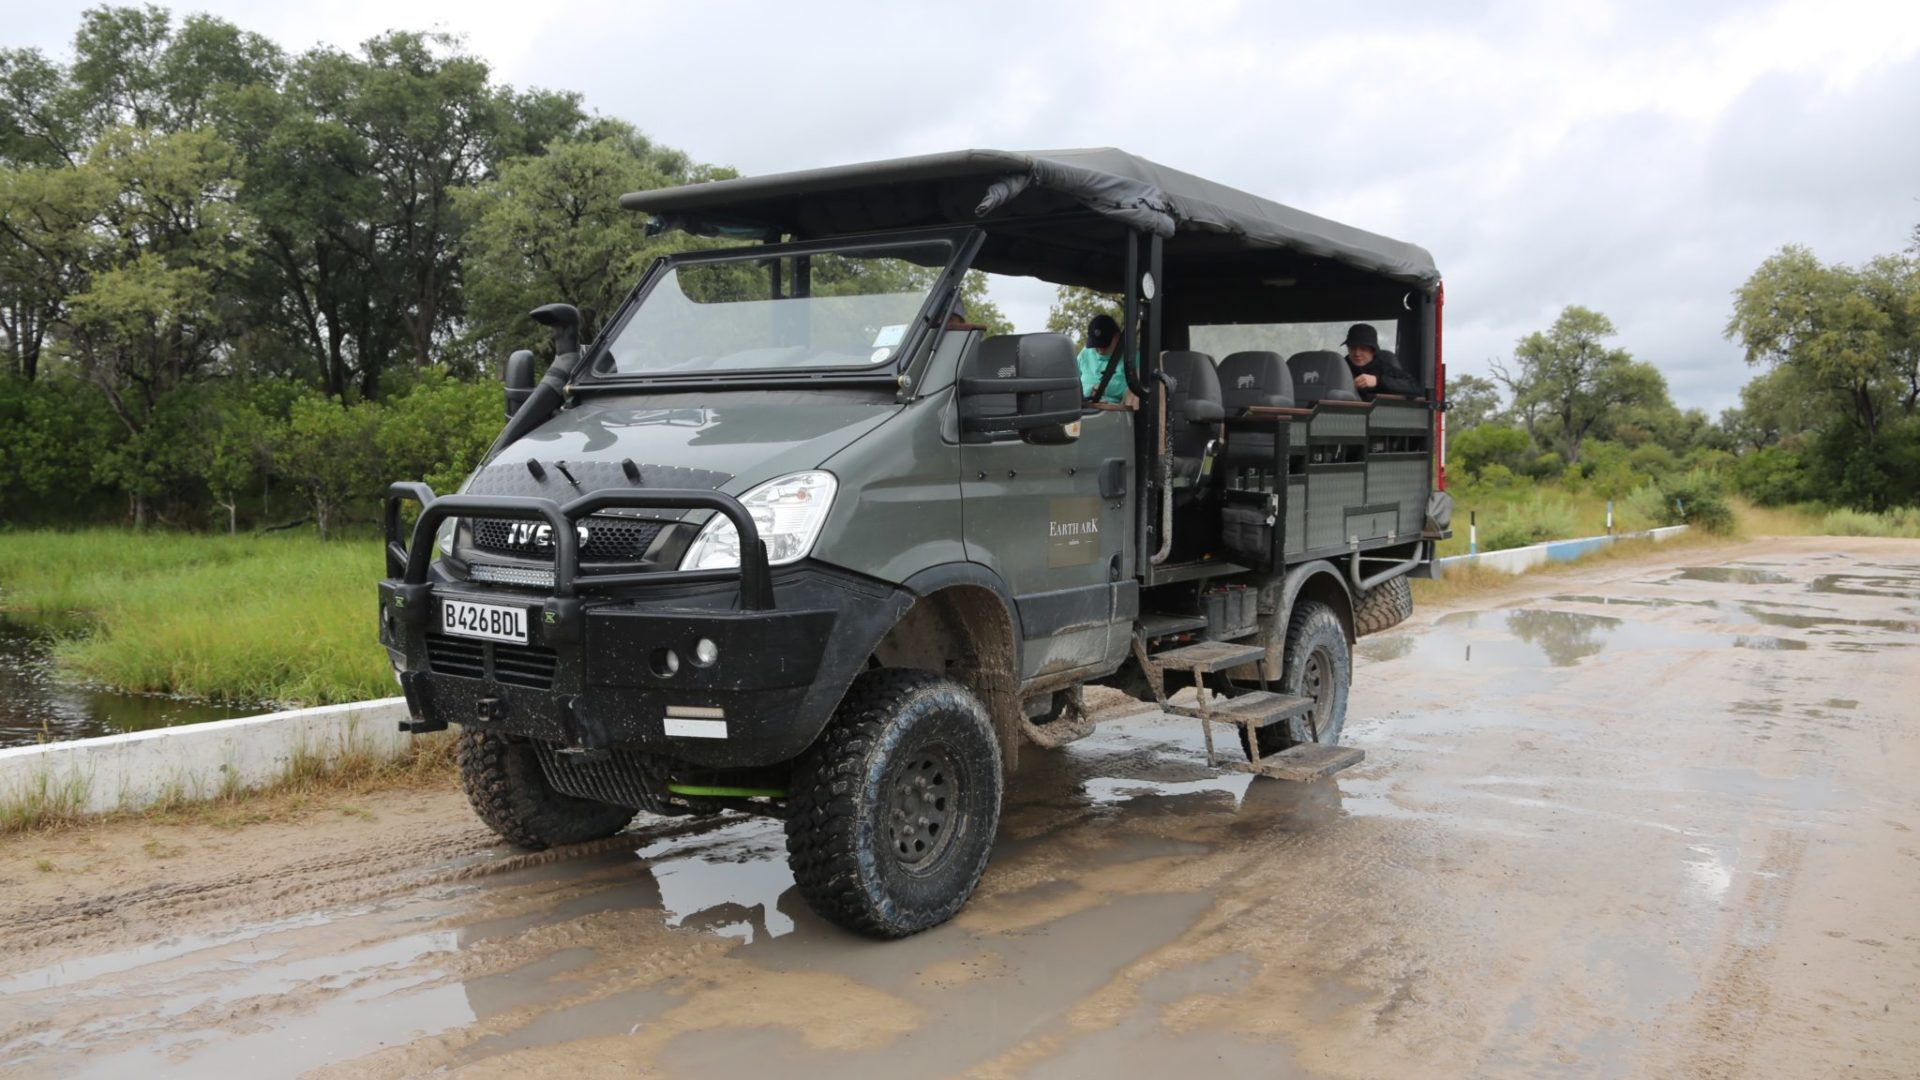 The beast iveco game viewer vehcile on road